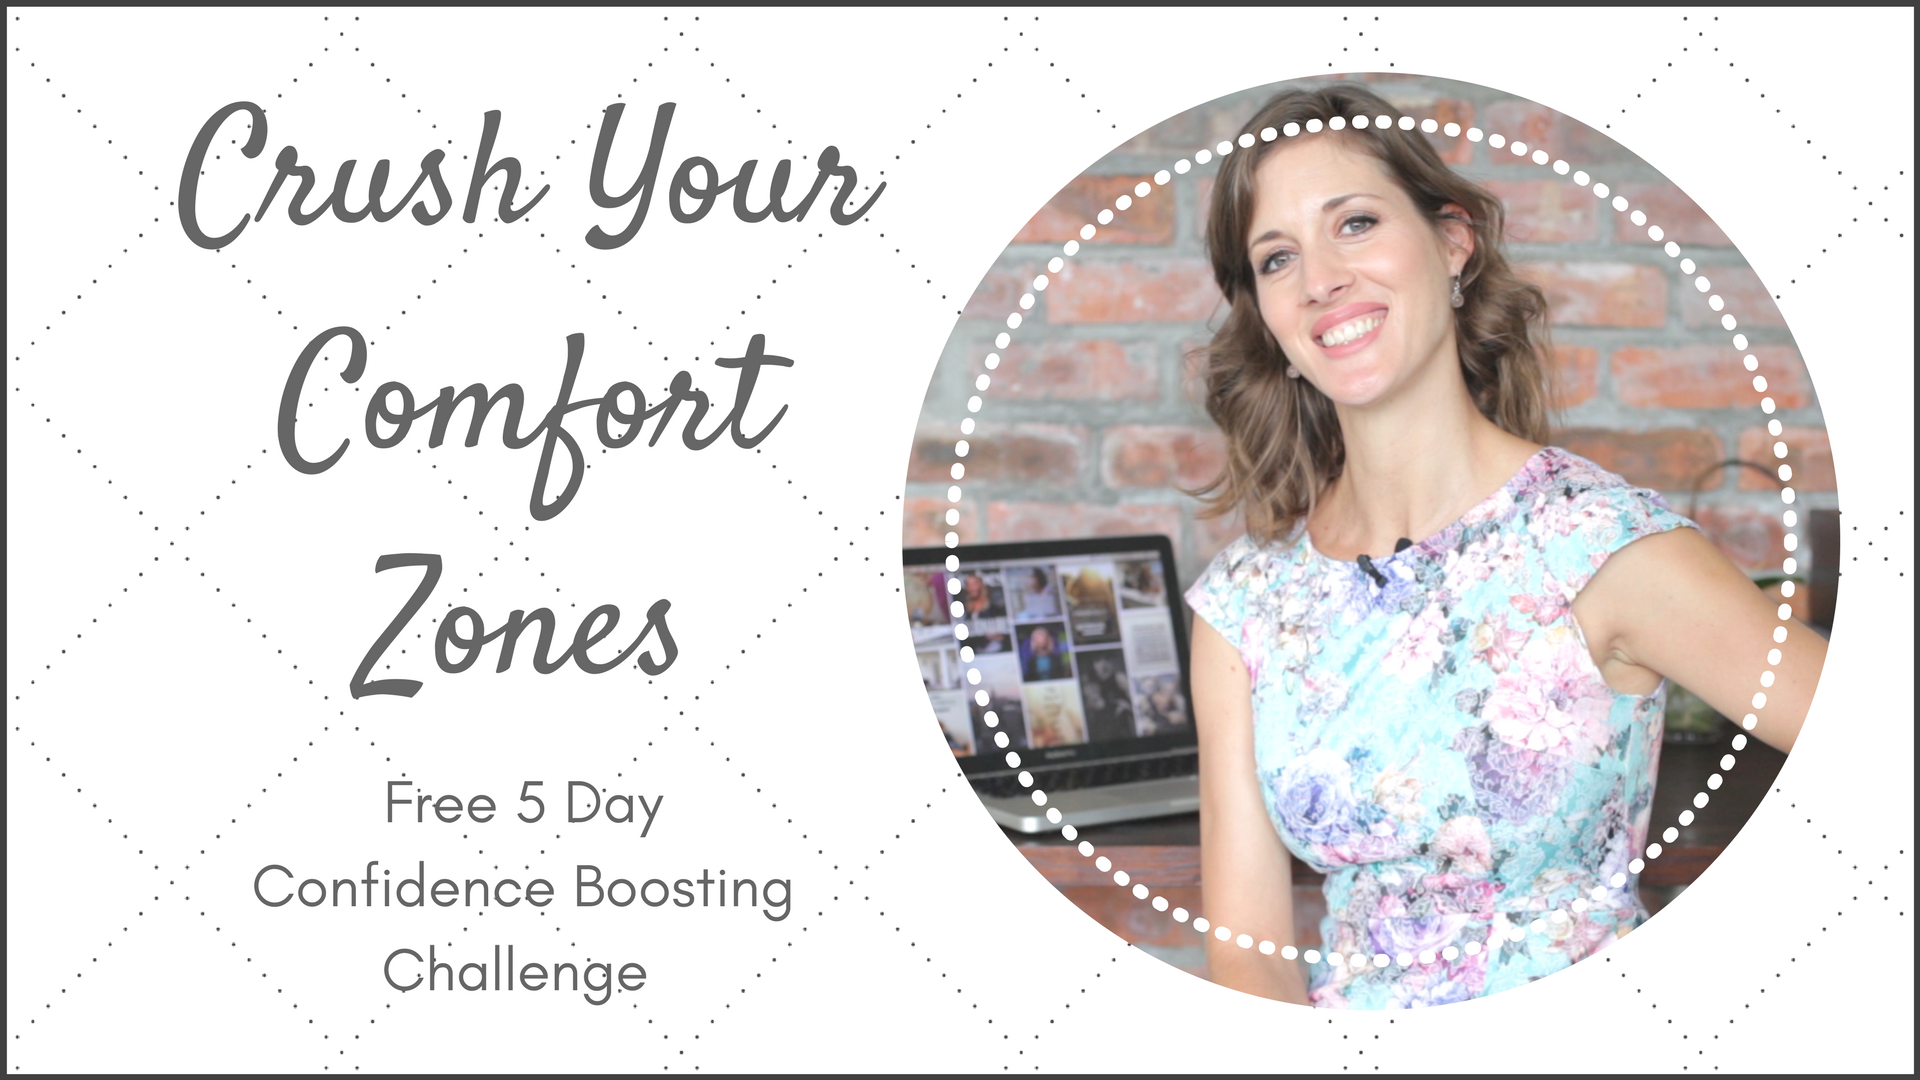 FREE 5 DAY CHALLENGE: Crush Your Comfort Zones